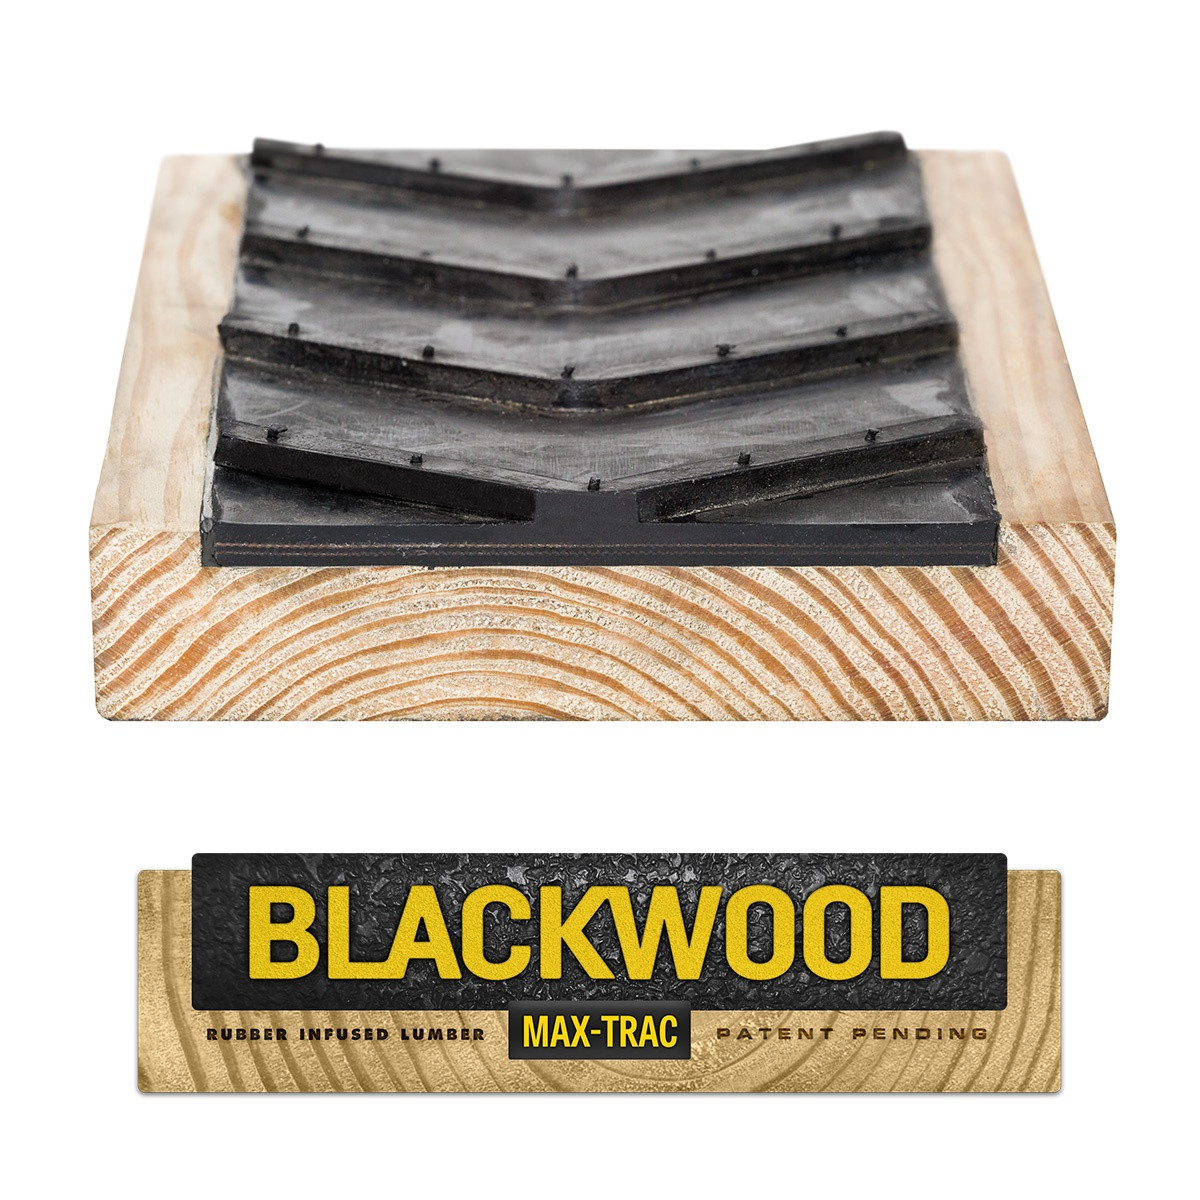 Blackwood Max Trac 2 X 8 Boards 20ft Long 4 Pack